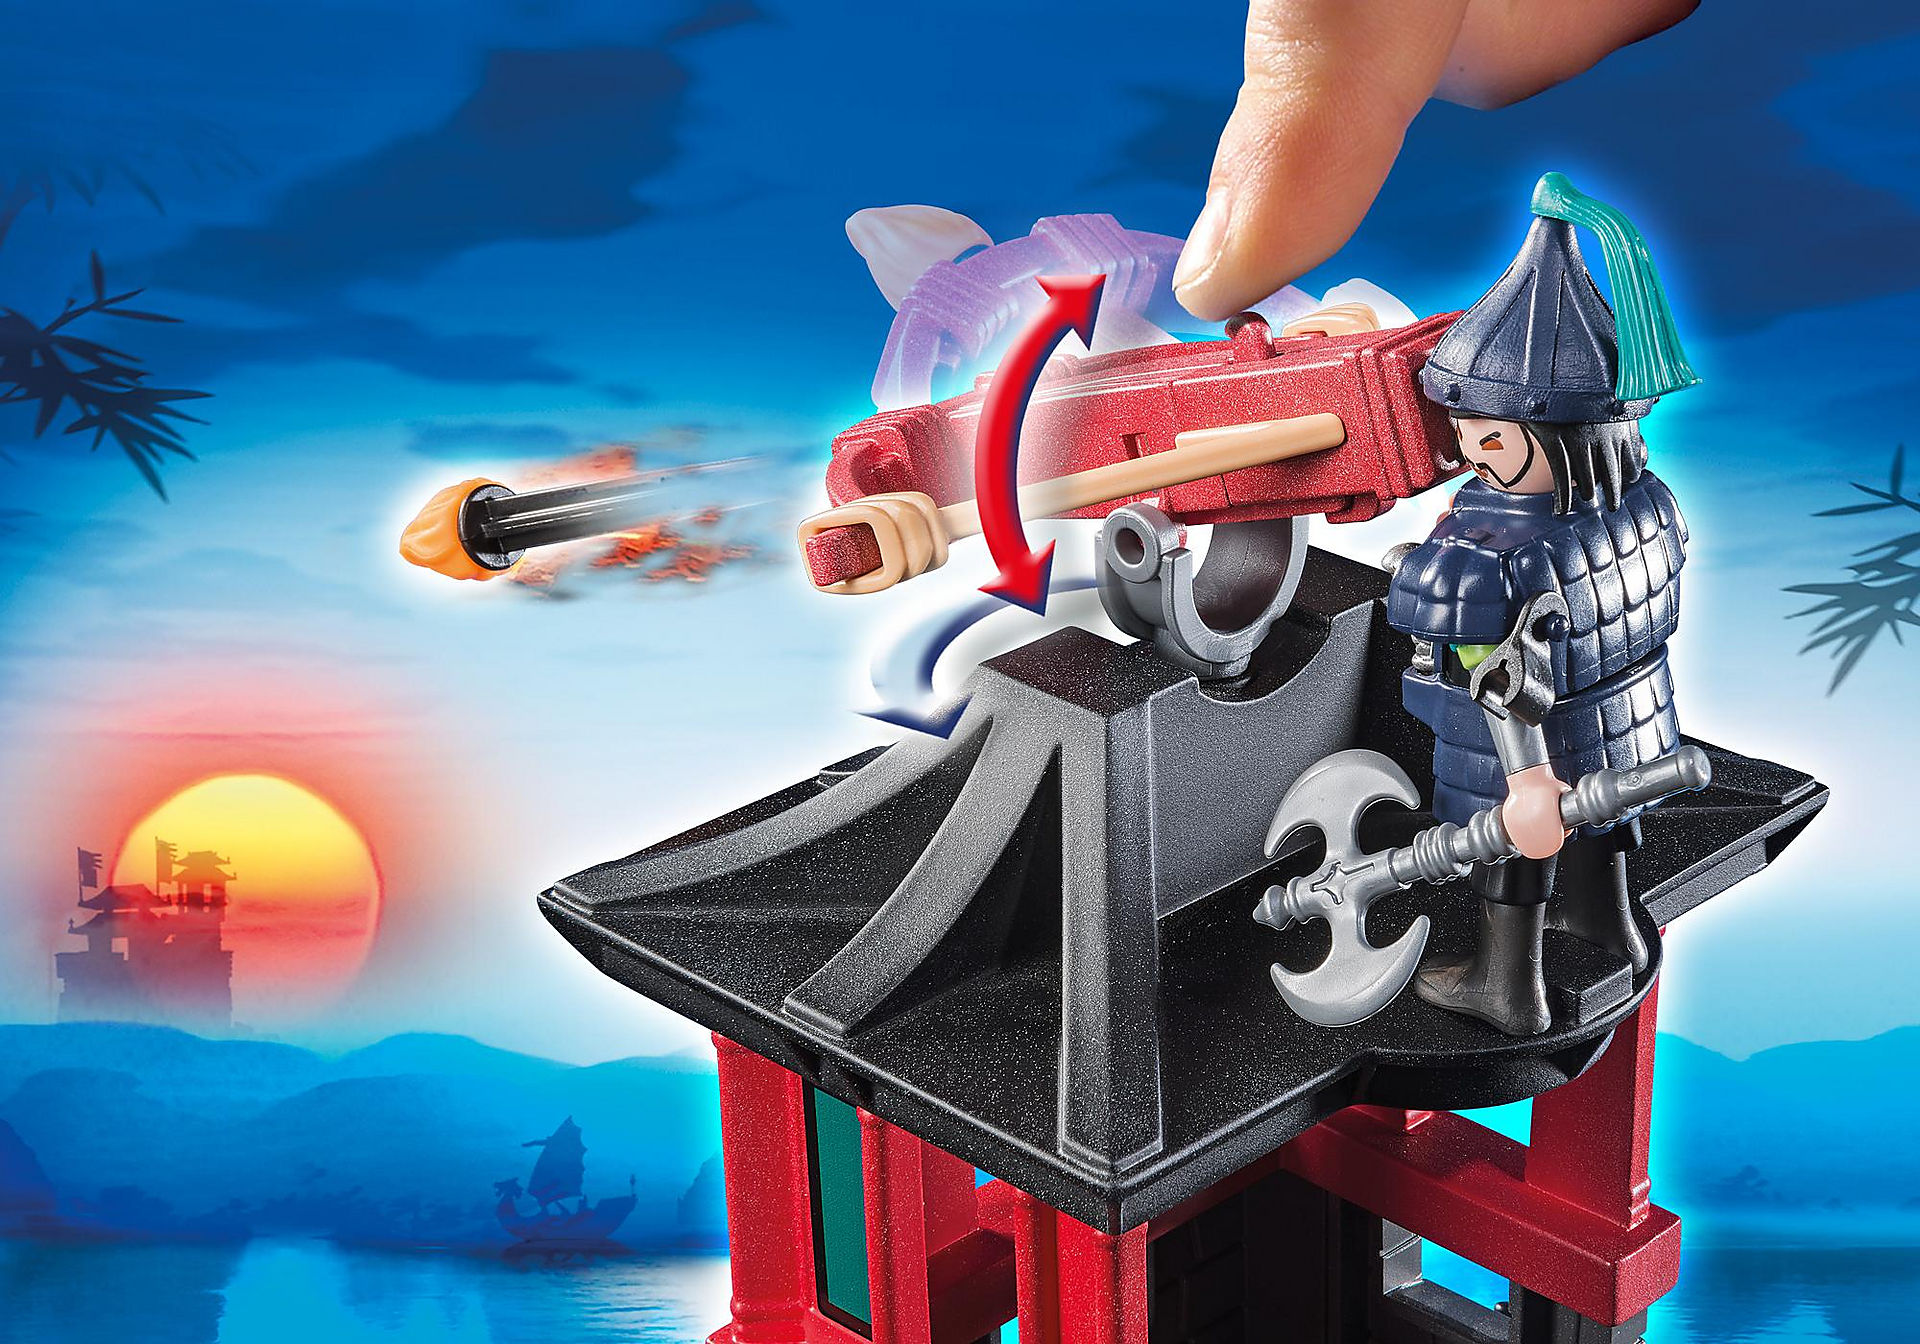 http://media.playmobil.com/i/playmobil/5480_product_extra1/Geheime Drachenfestung